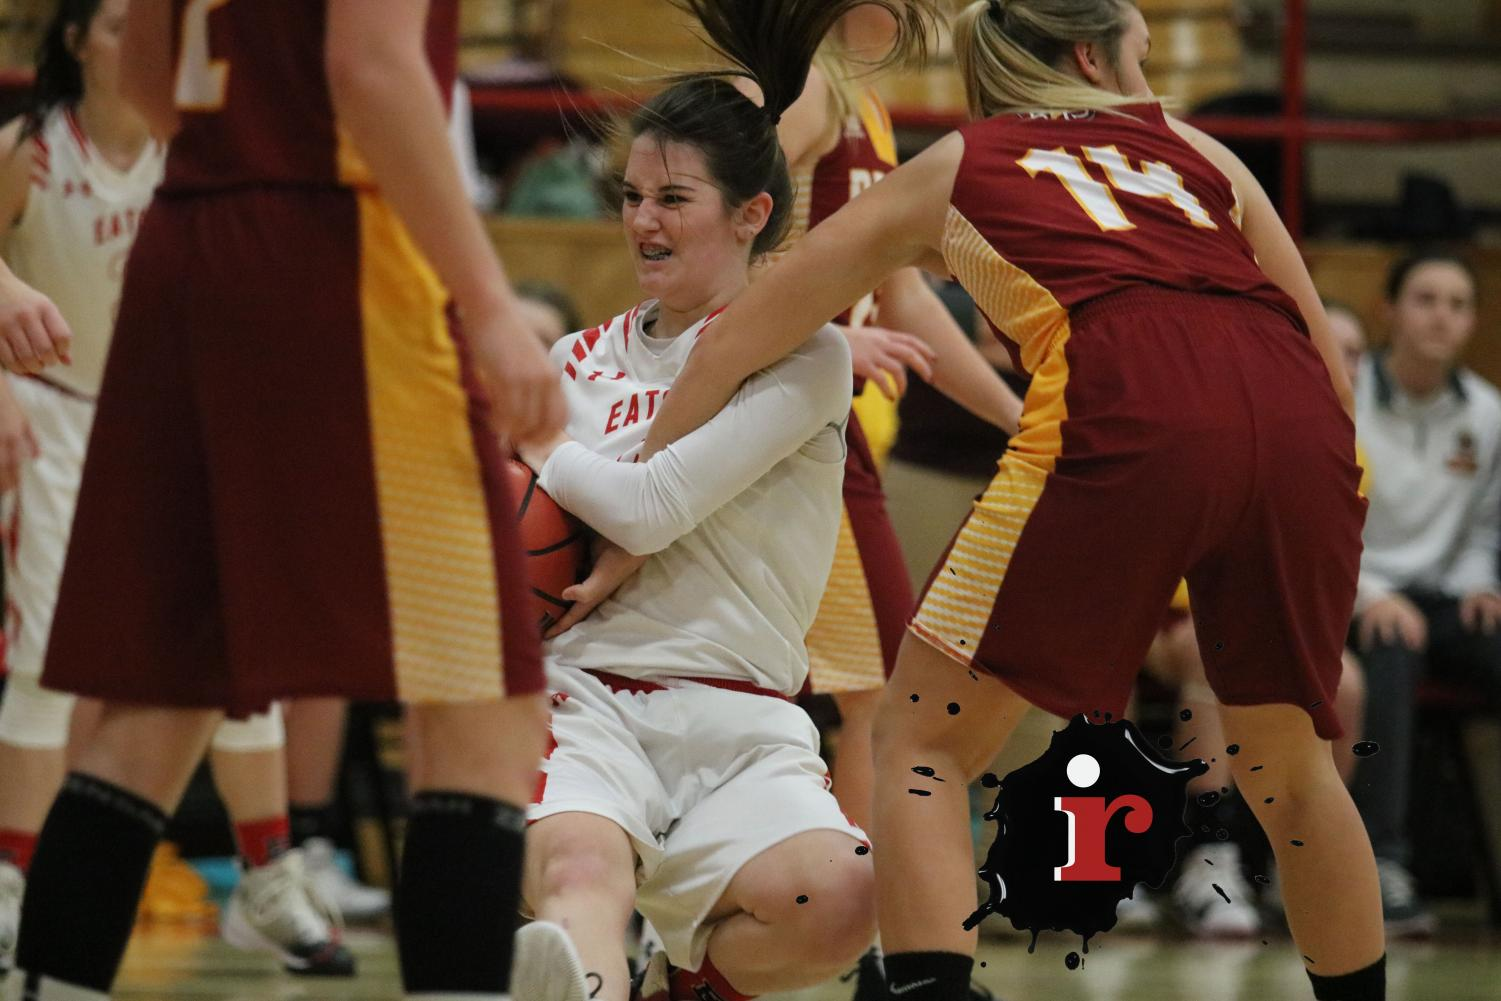 Whitley Ervin (18) scrambles for the jump ball on defense.